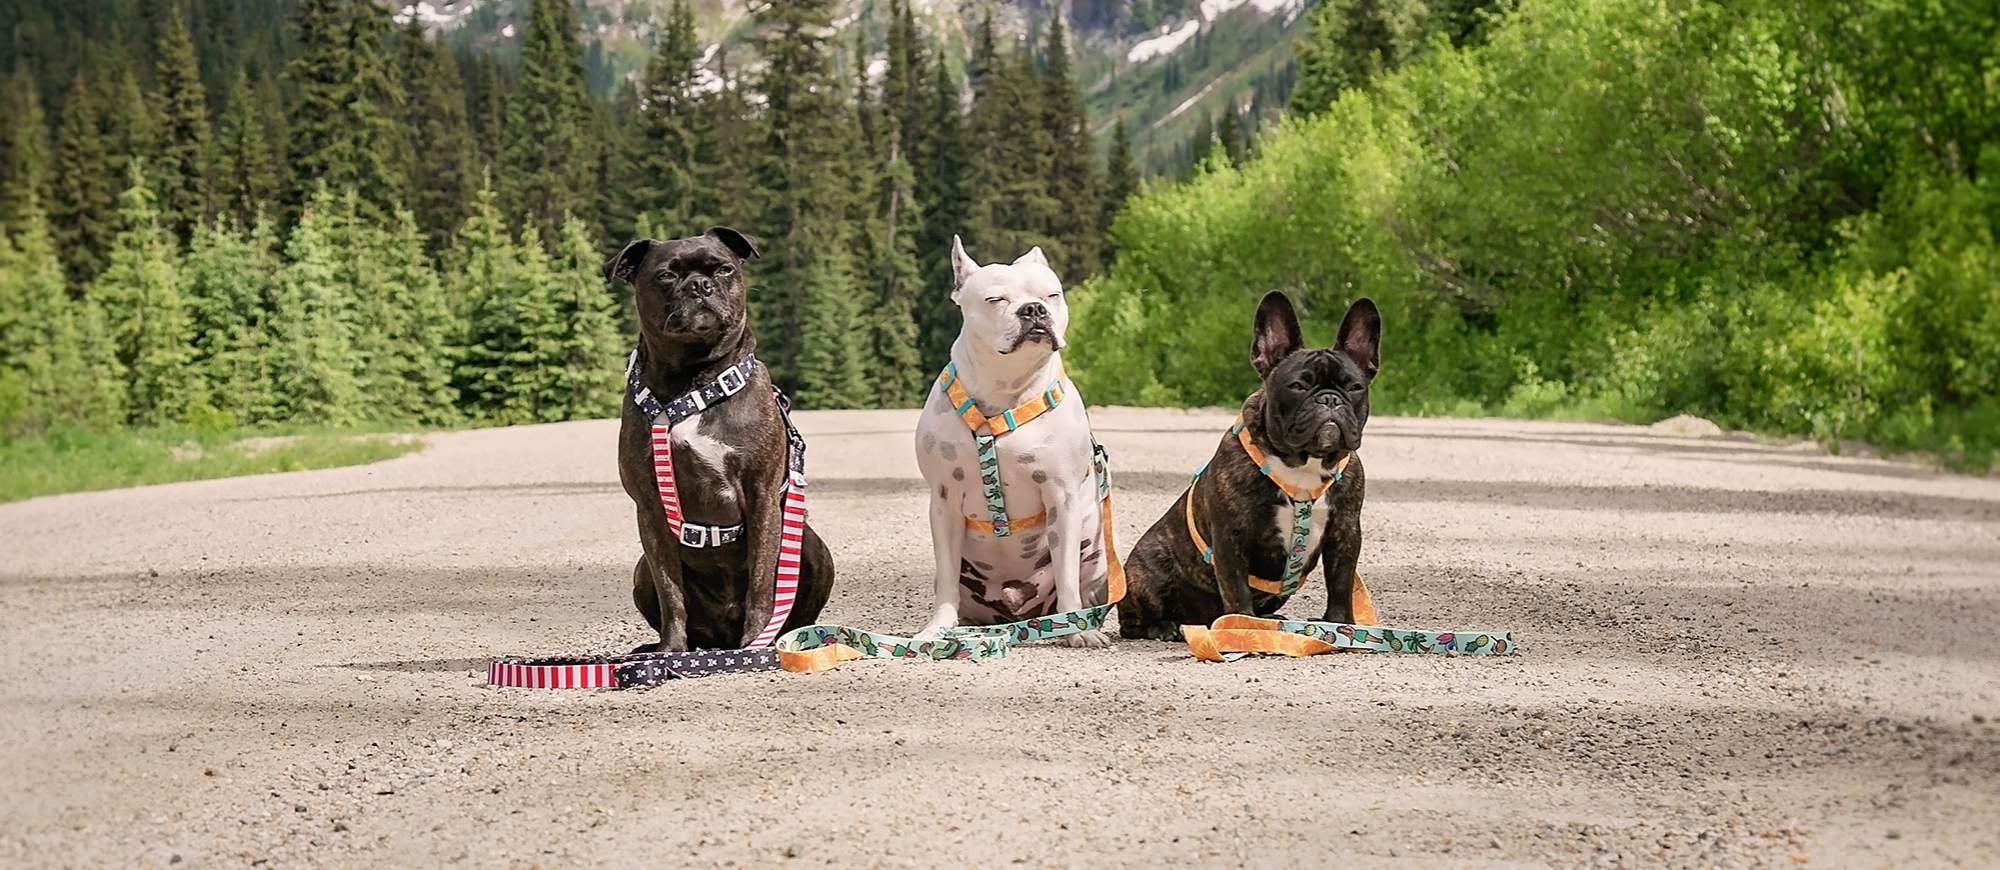 Three dogs wearing brightly coloured harnesses sitting on a dirt road with large mountains in the background.